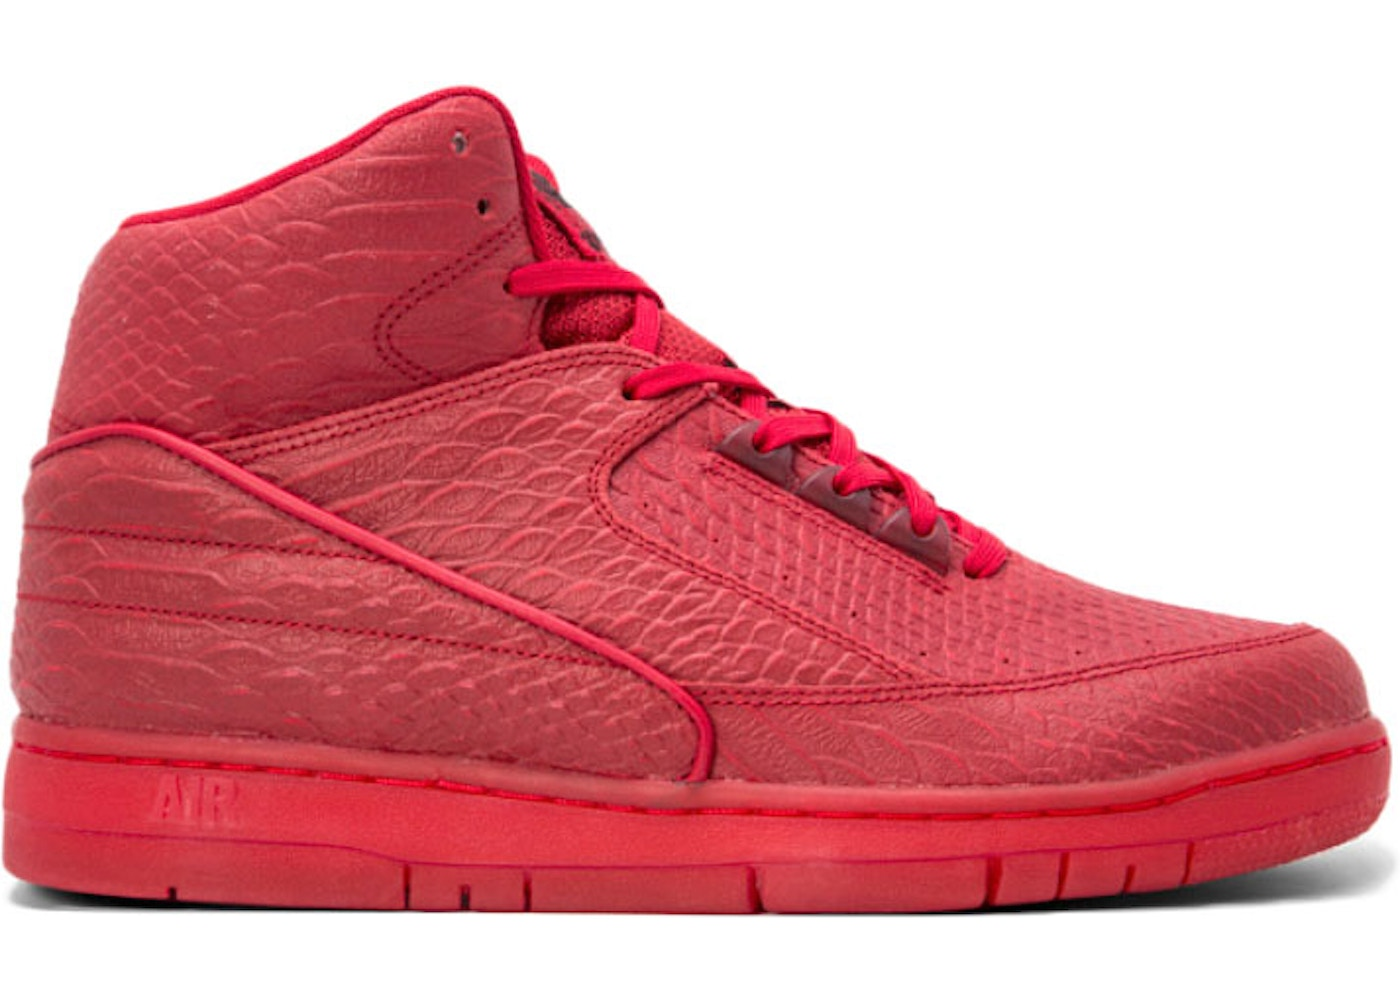 pick up 3bd90 45990 Air Python Red October - 705066-600